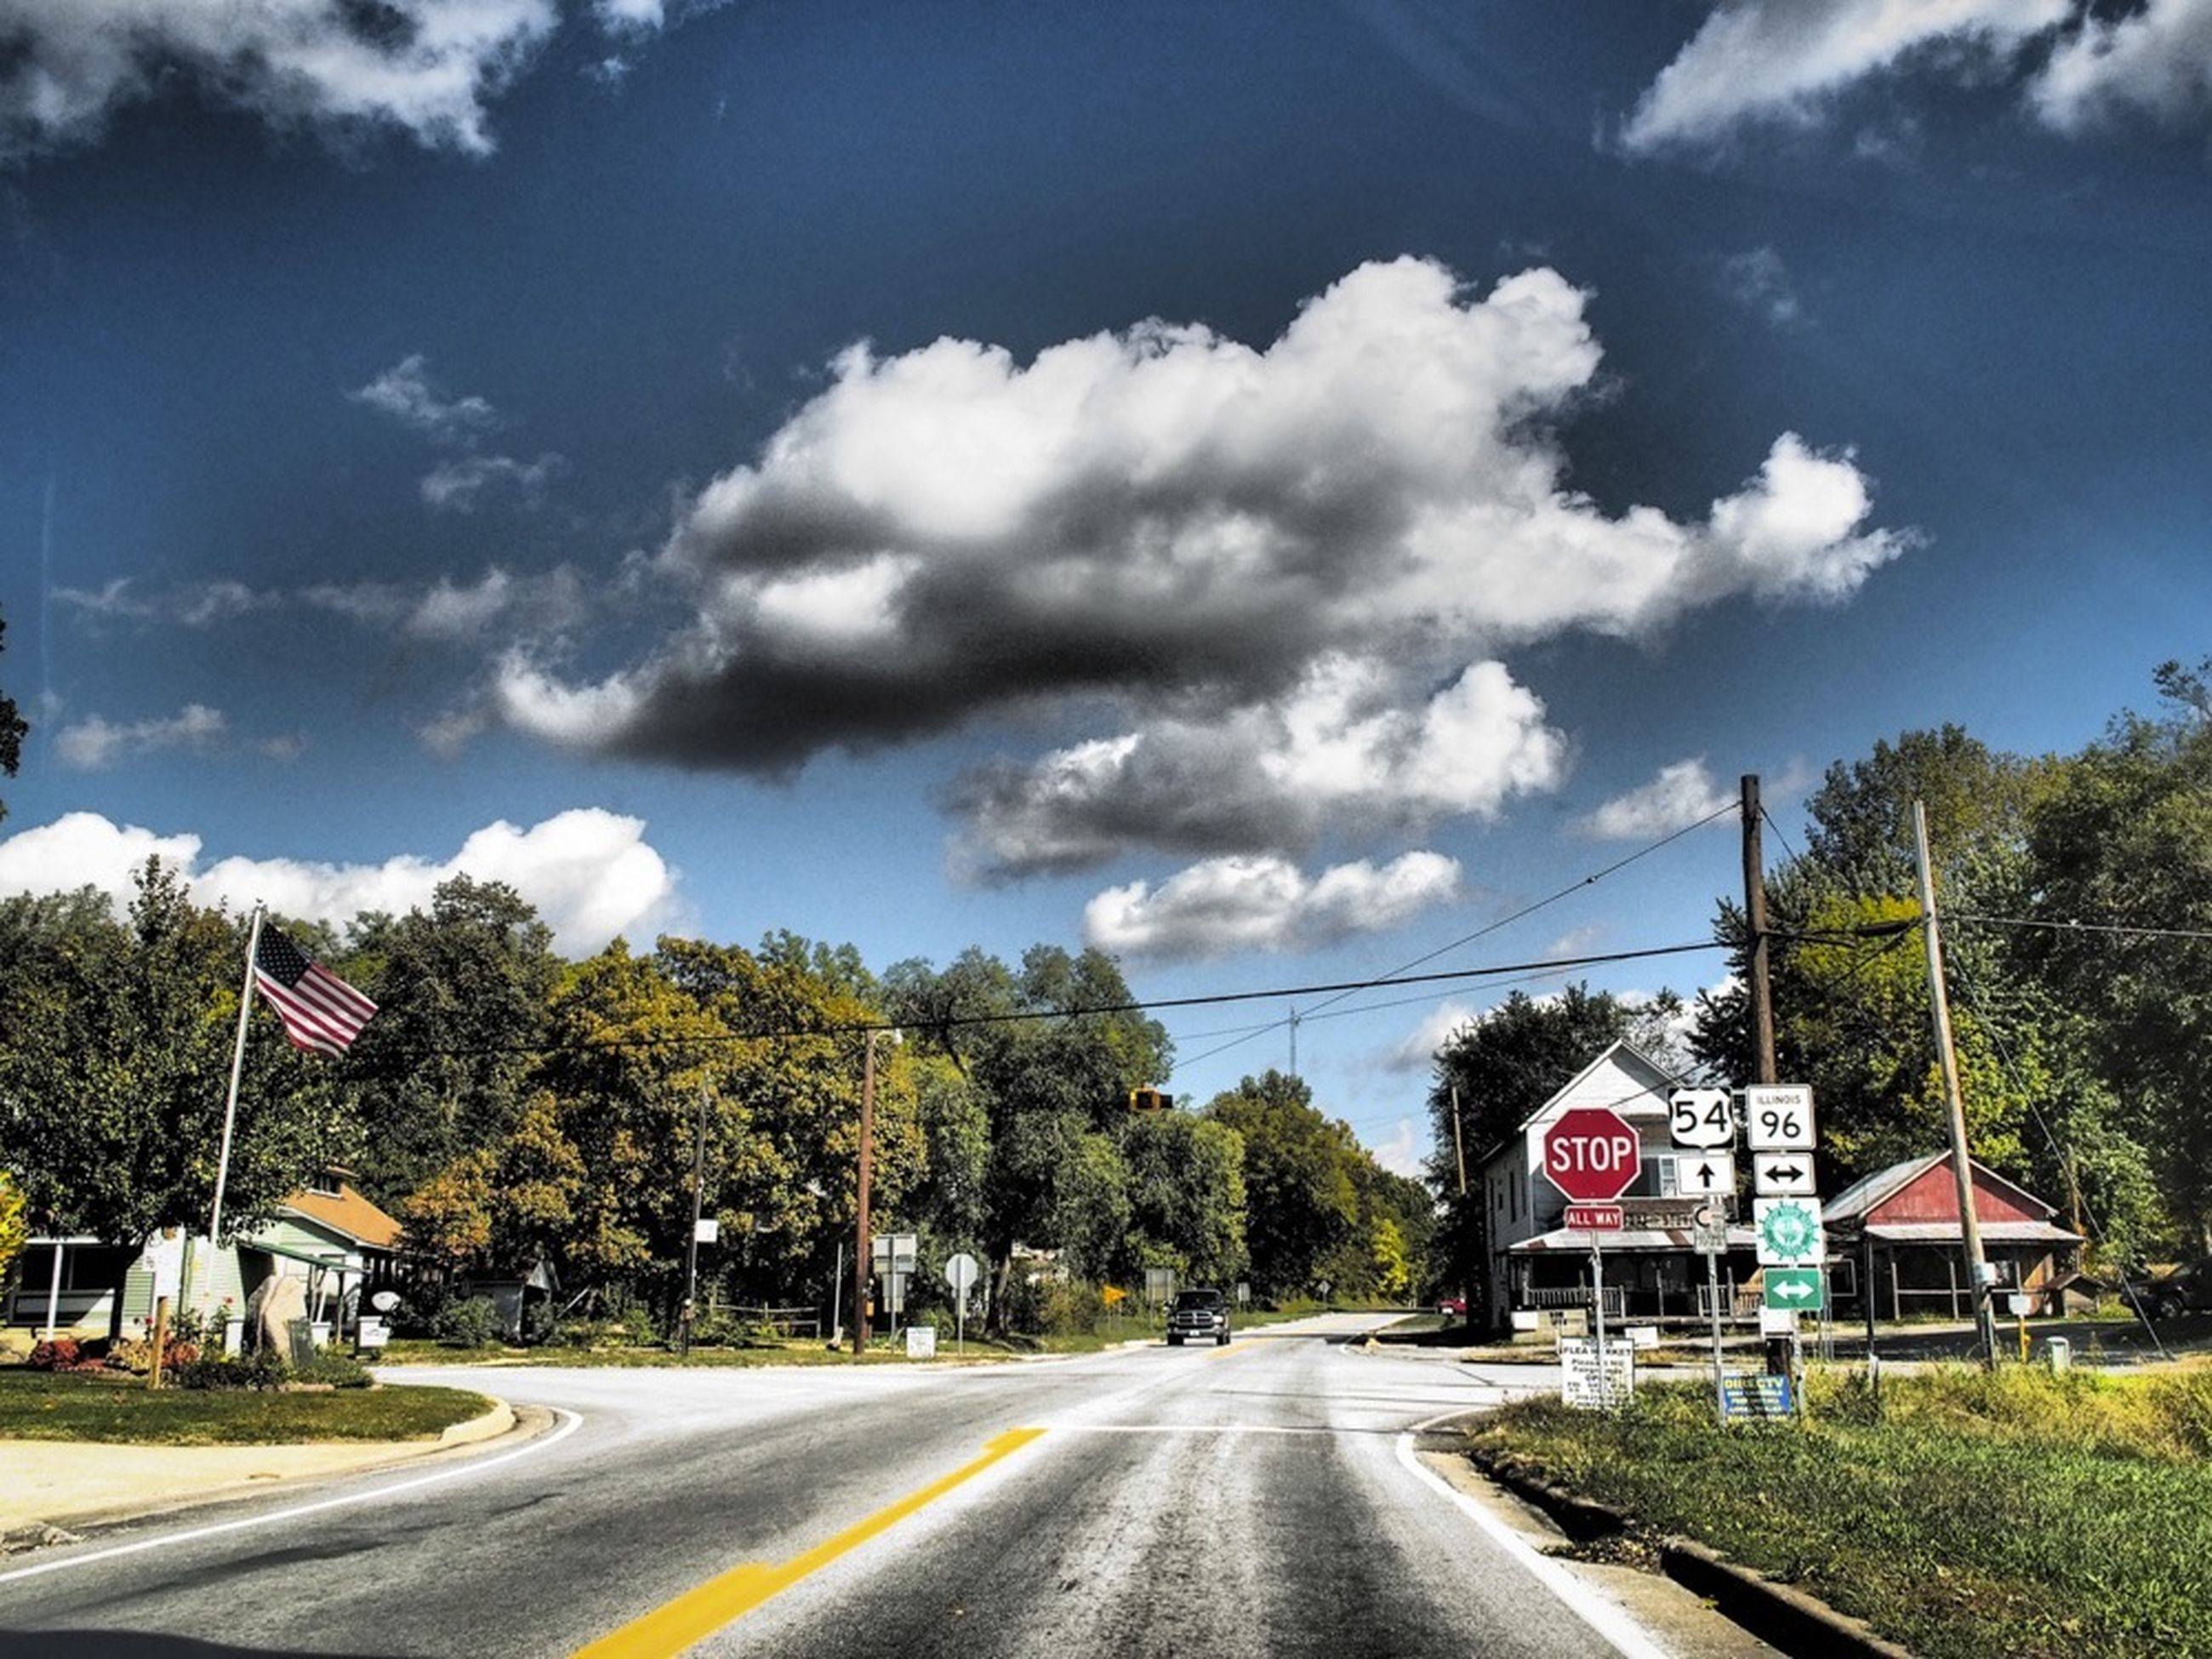 road, transportation, the way forward, sky, cloud - sky, tree, diminishing perspective, road marking, vanishing point, street, country road, cloud, cloudy, empty road, car, empty, blue, building exterior, day, road sign